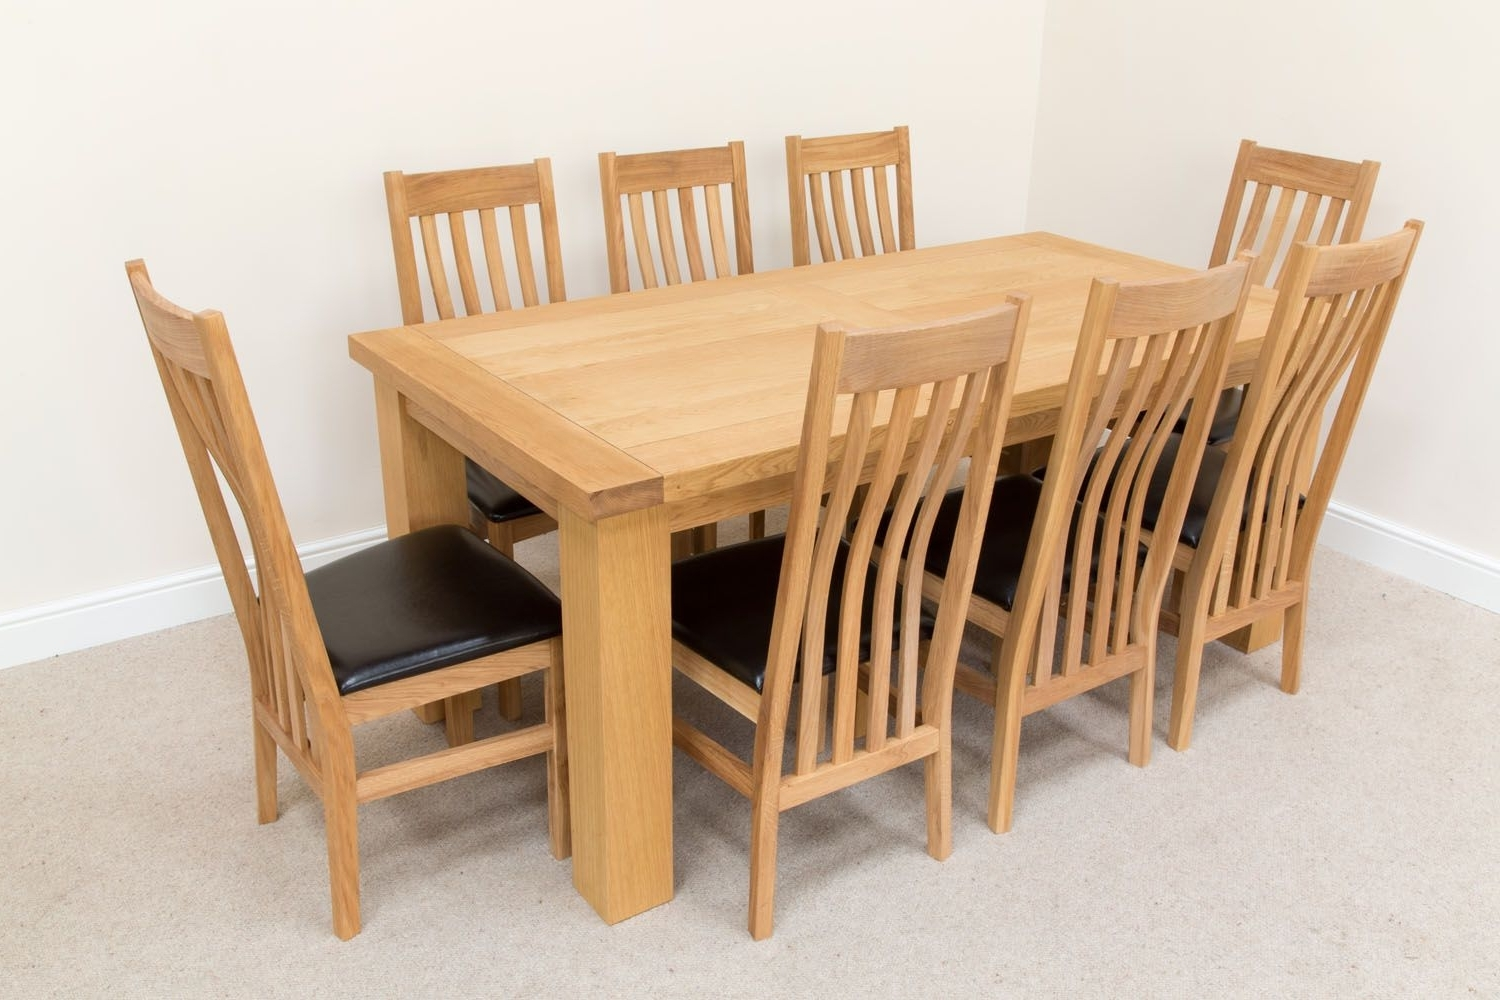 2017 Riga Oak Table 8 Seater Winchester Brown Chair Dining Set Intended For Dining Tables For  (View 23 of 25)